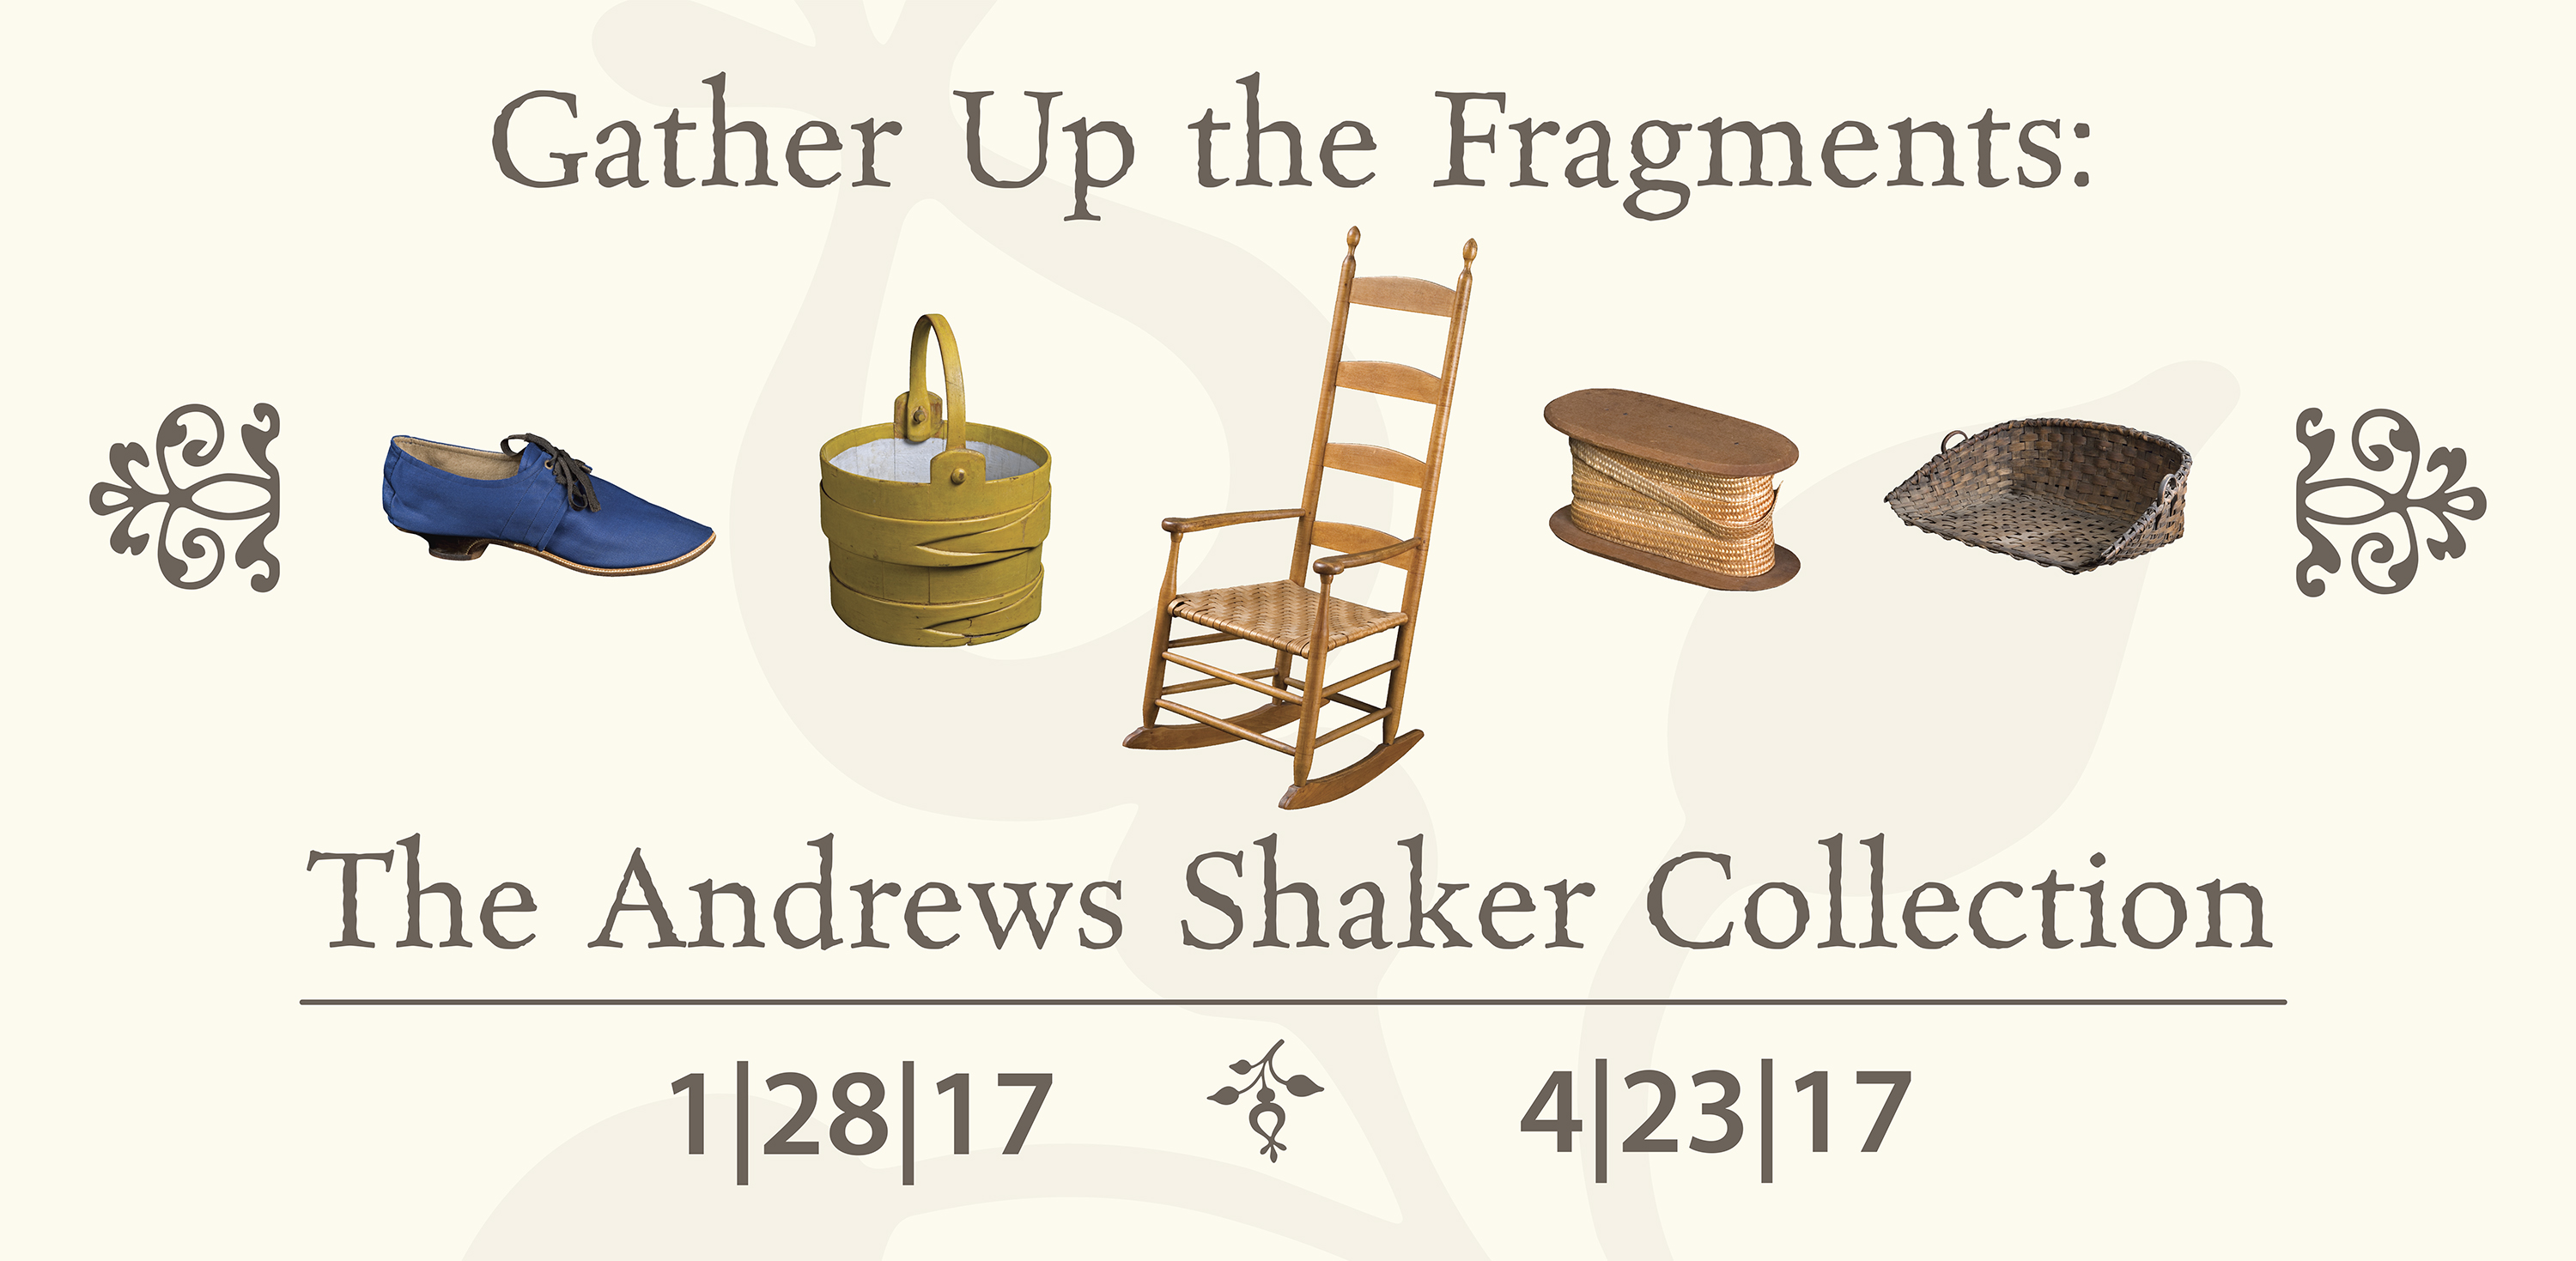 gather up the fragments: the andrews shaker collection - mercer